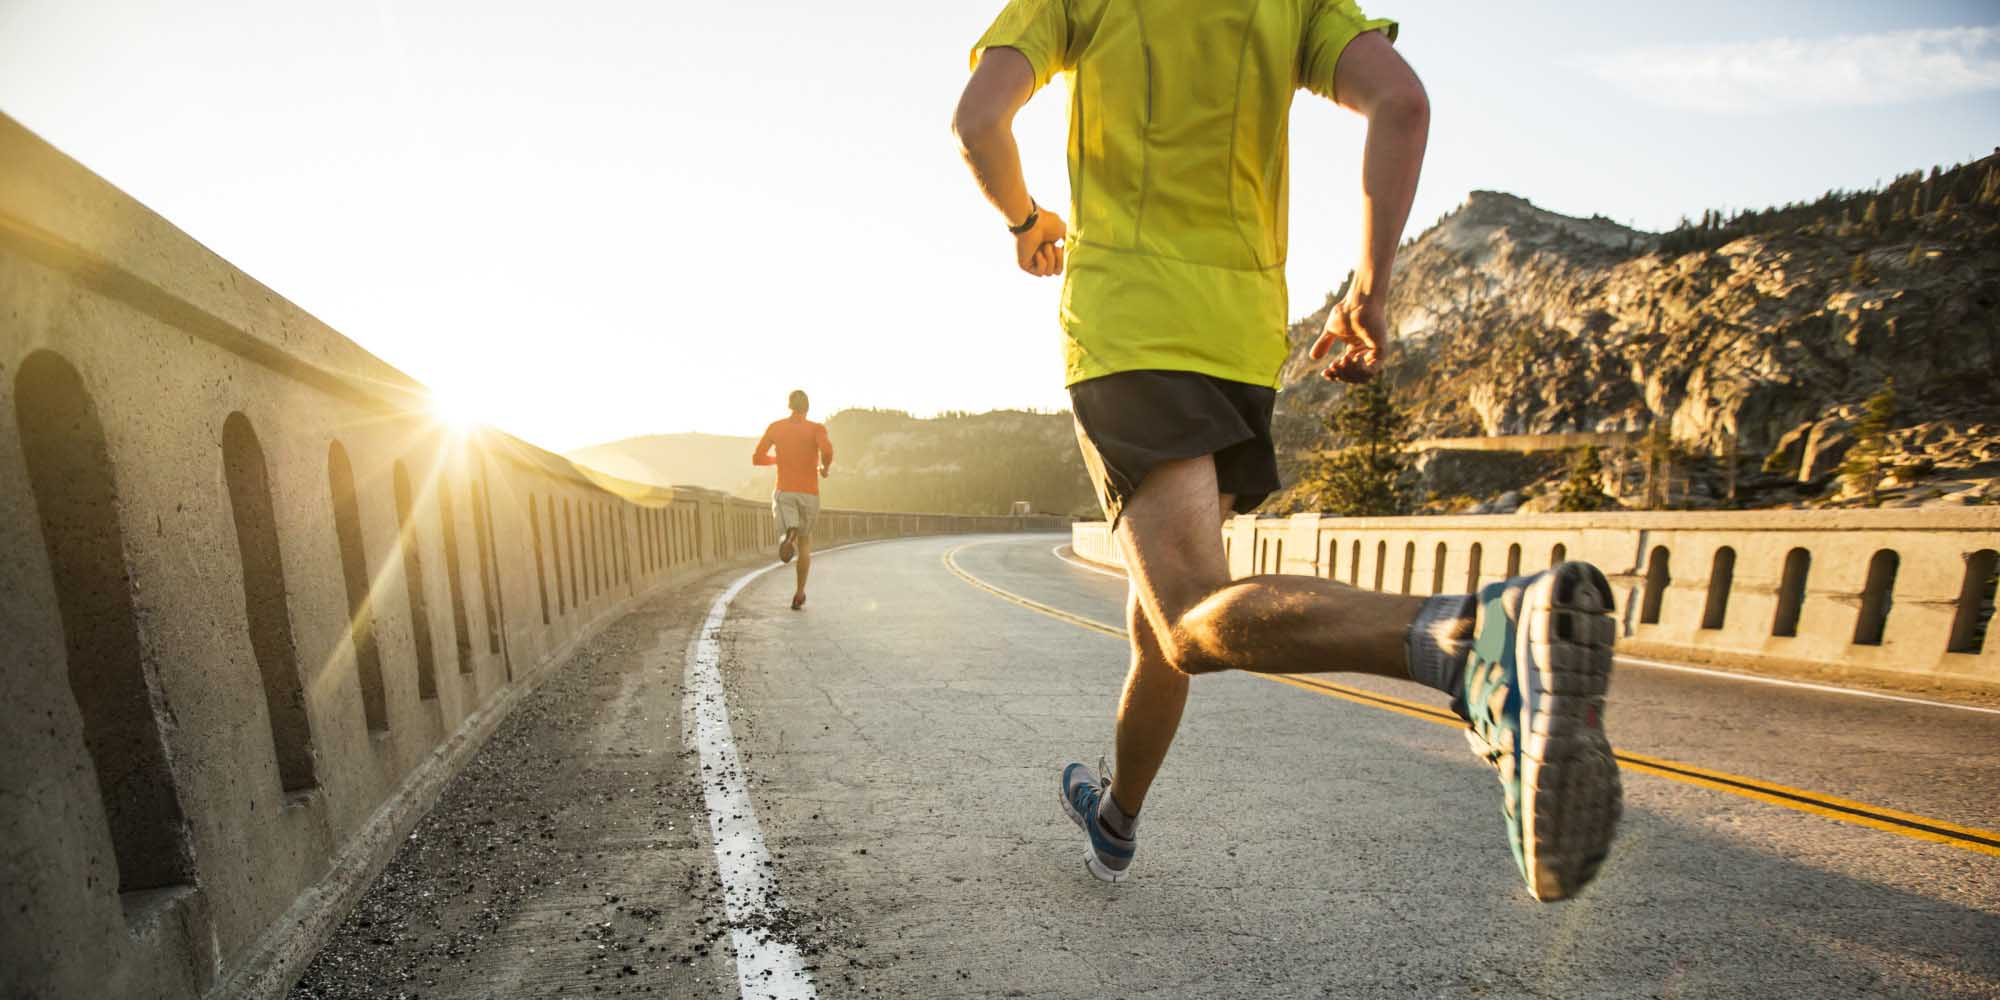 Two men on an early morning run.